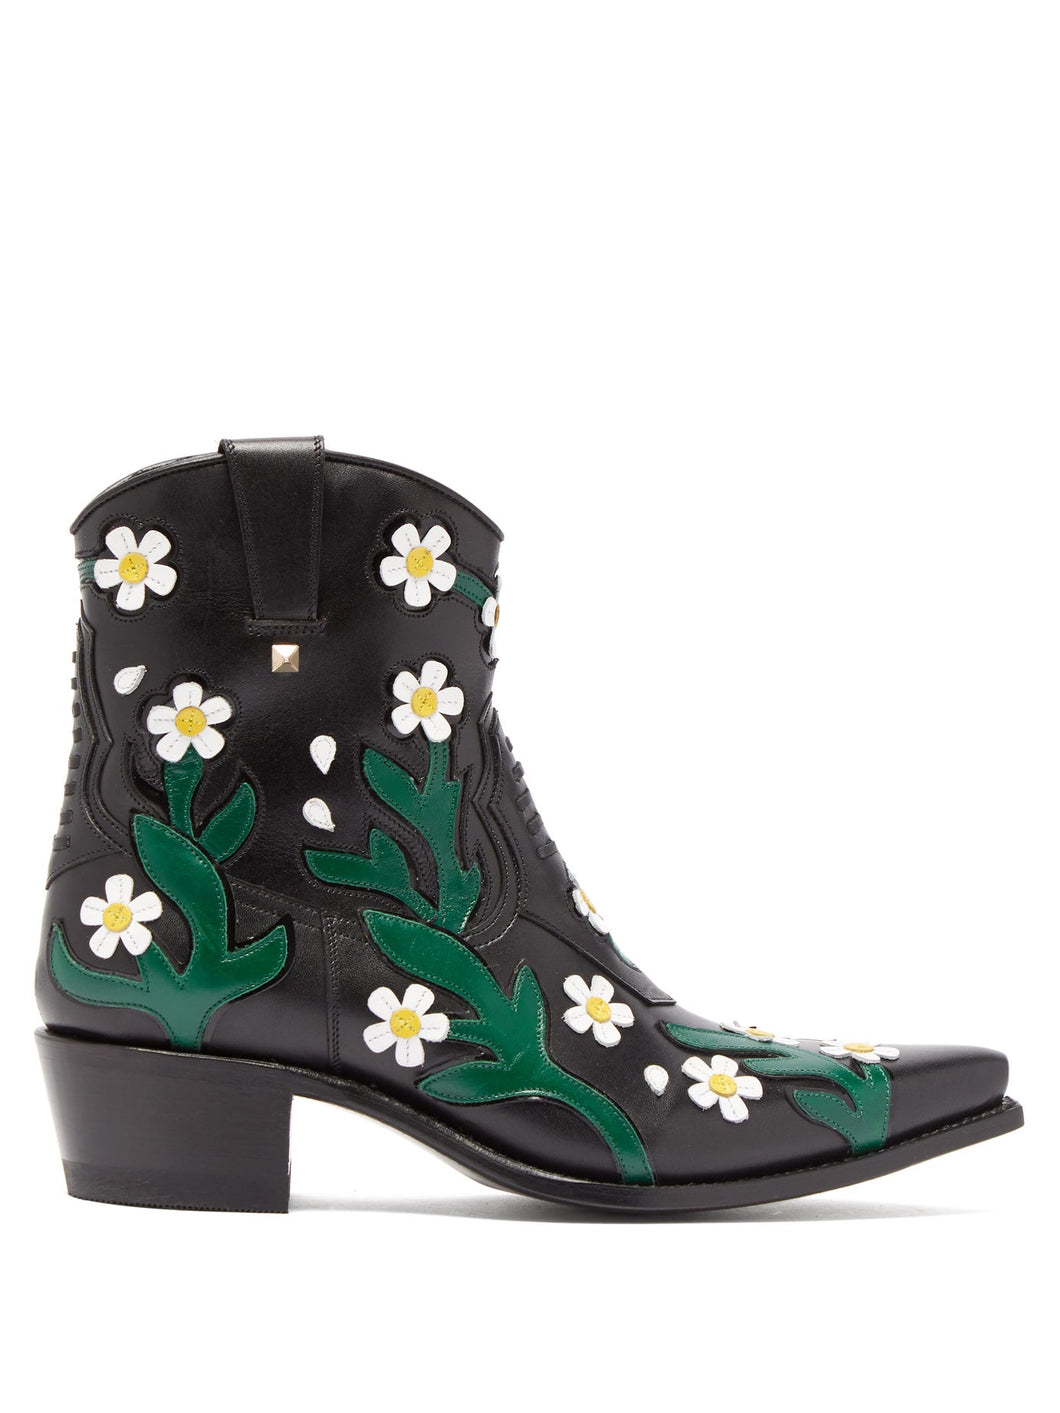 Ranch Daisy floral-appliqué western leather boots